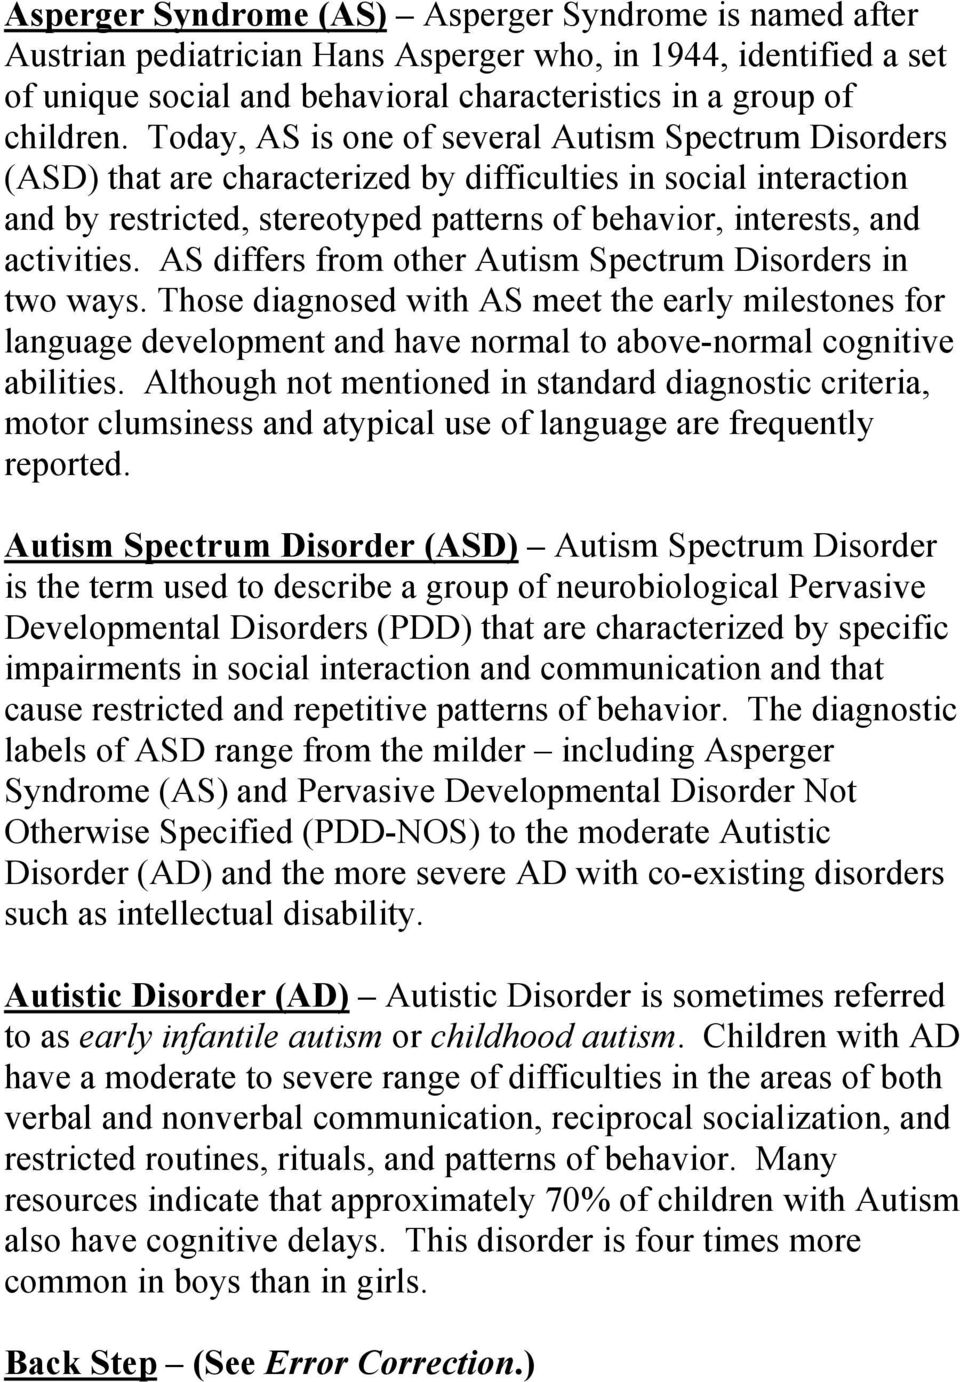 AS differs from other Autism Spectrum Disorders in two ways. Those diagnosed with AS meet the early milestones for language development and have normal to above-normal cognitive abilities.